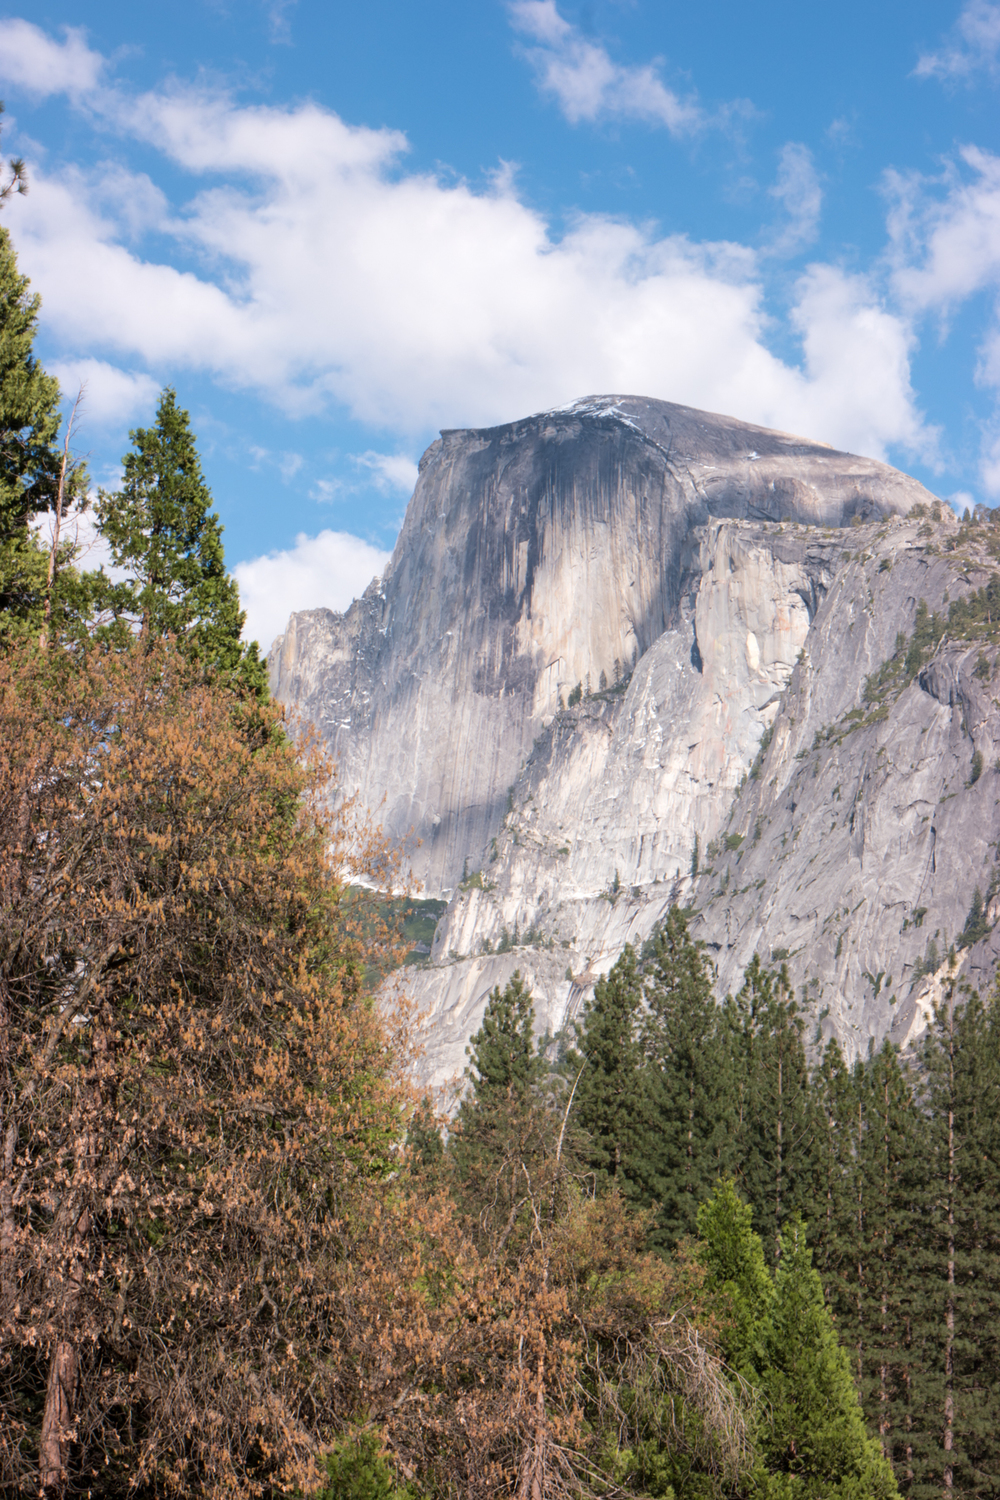 Wasim Muklashy Photography_April 2015_Yosemite_California_Samsung NX1_ SAM_1808_1800px.jpg